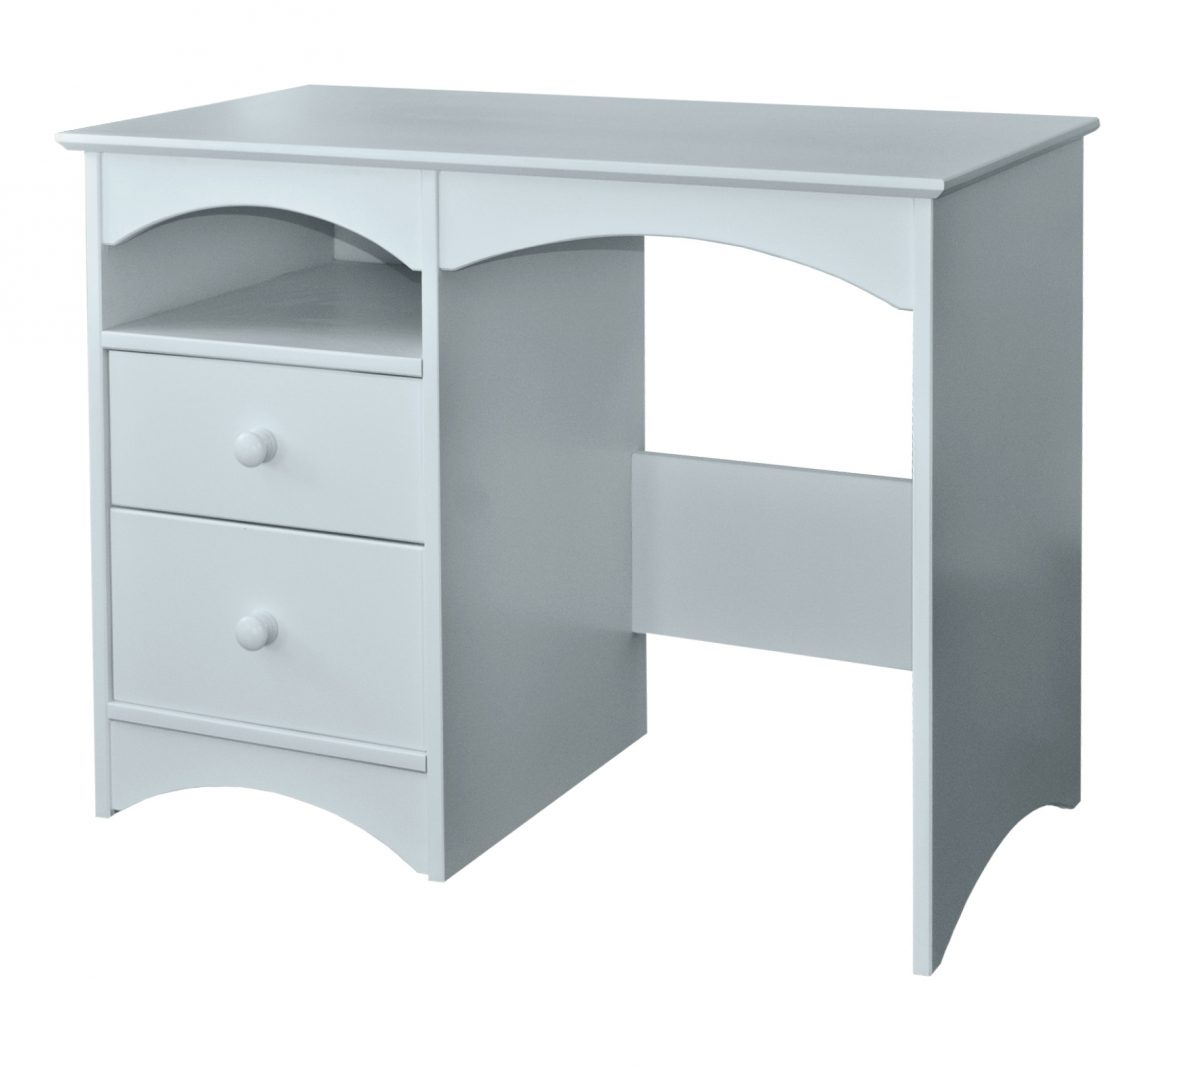 Elfin Single Ped Desk 2 Drawer Open Shelf Little Boy Blue